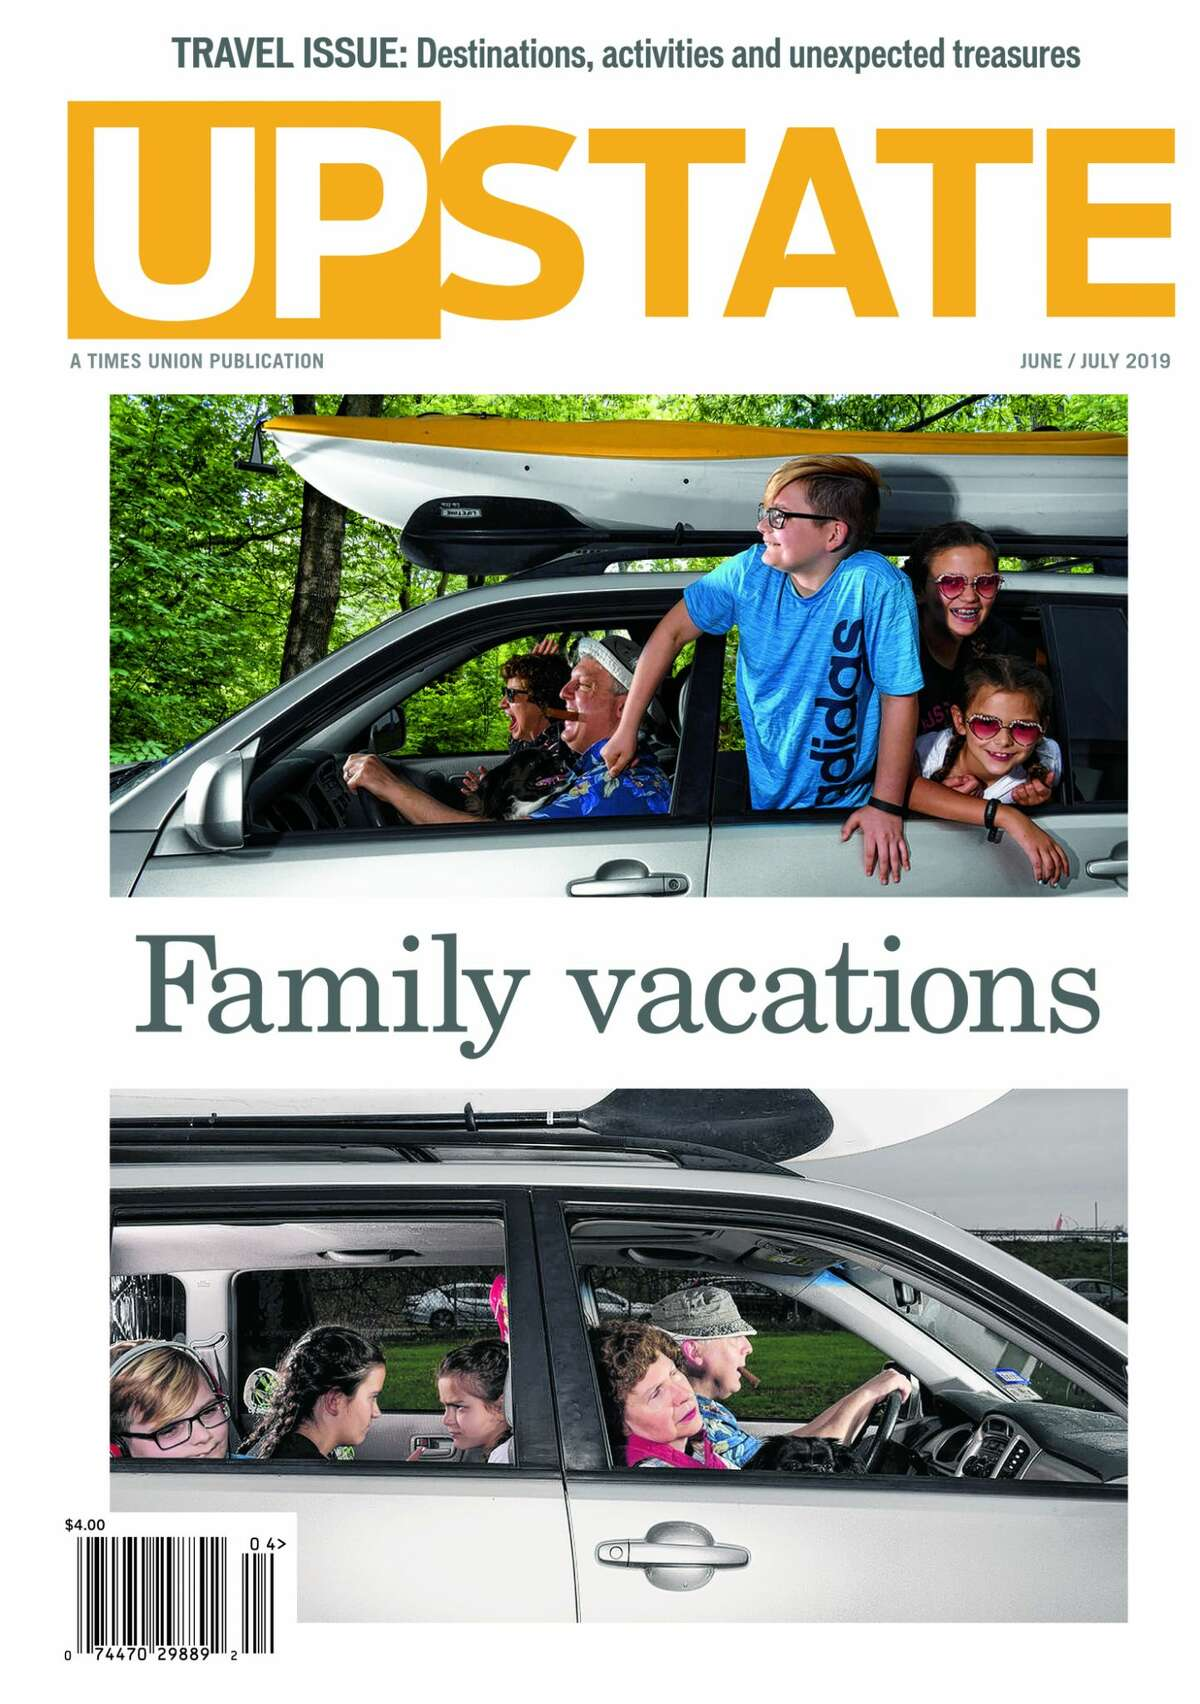 June/July Upstate cover